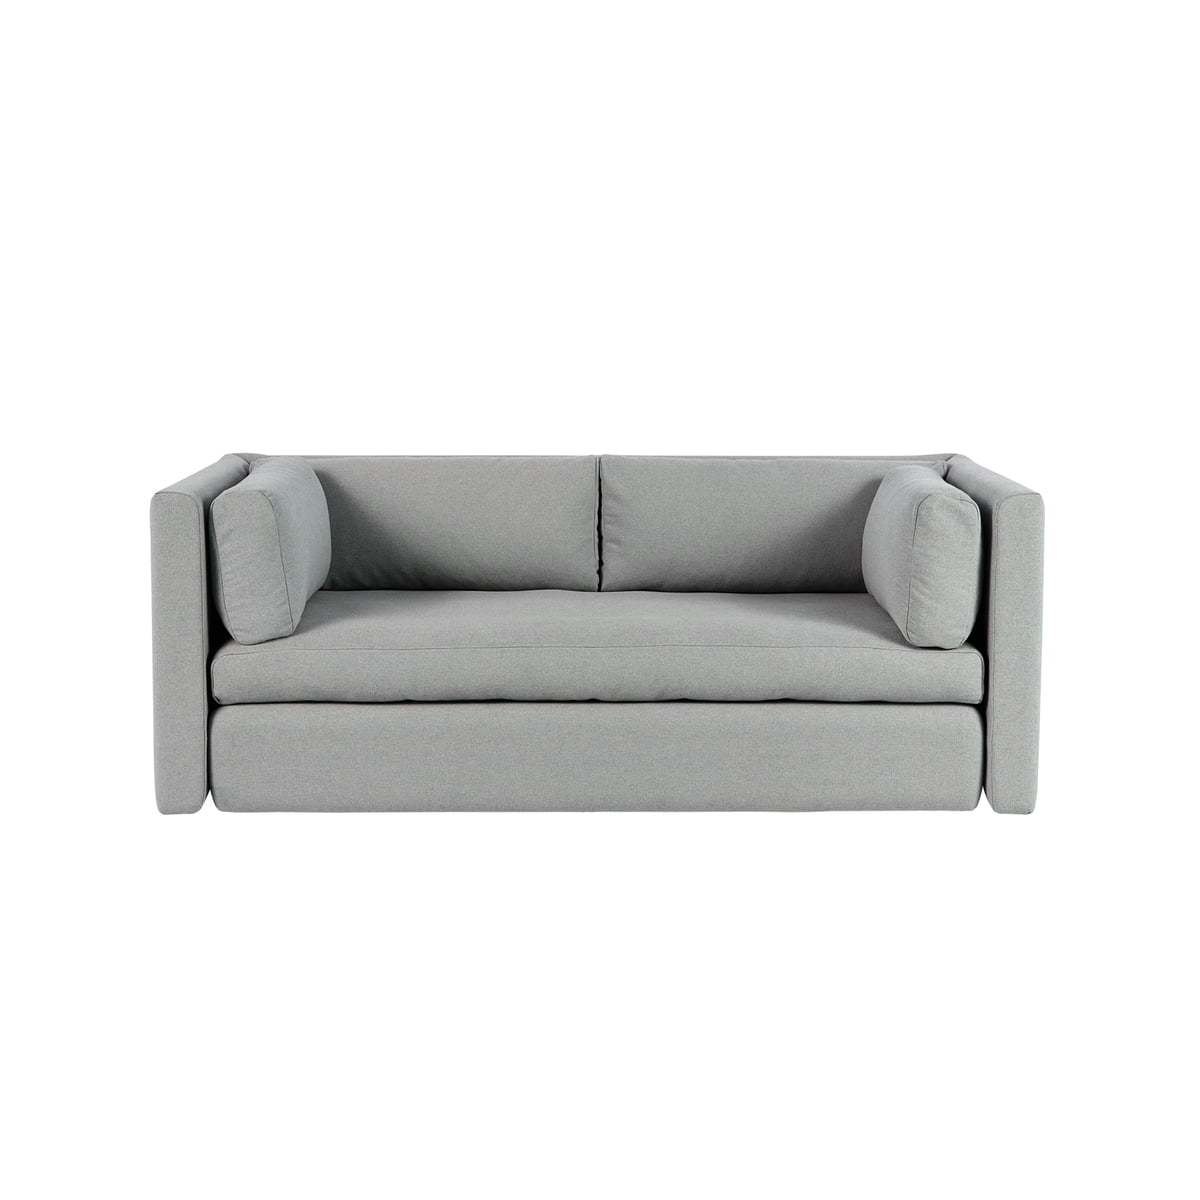 buy the 2 seater hackney sofa by hay. Black Bedroom Furniture Sets. Home Design Ideas